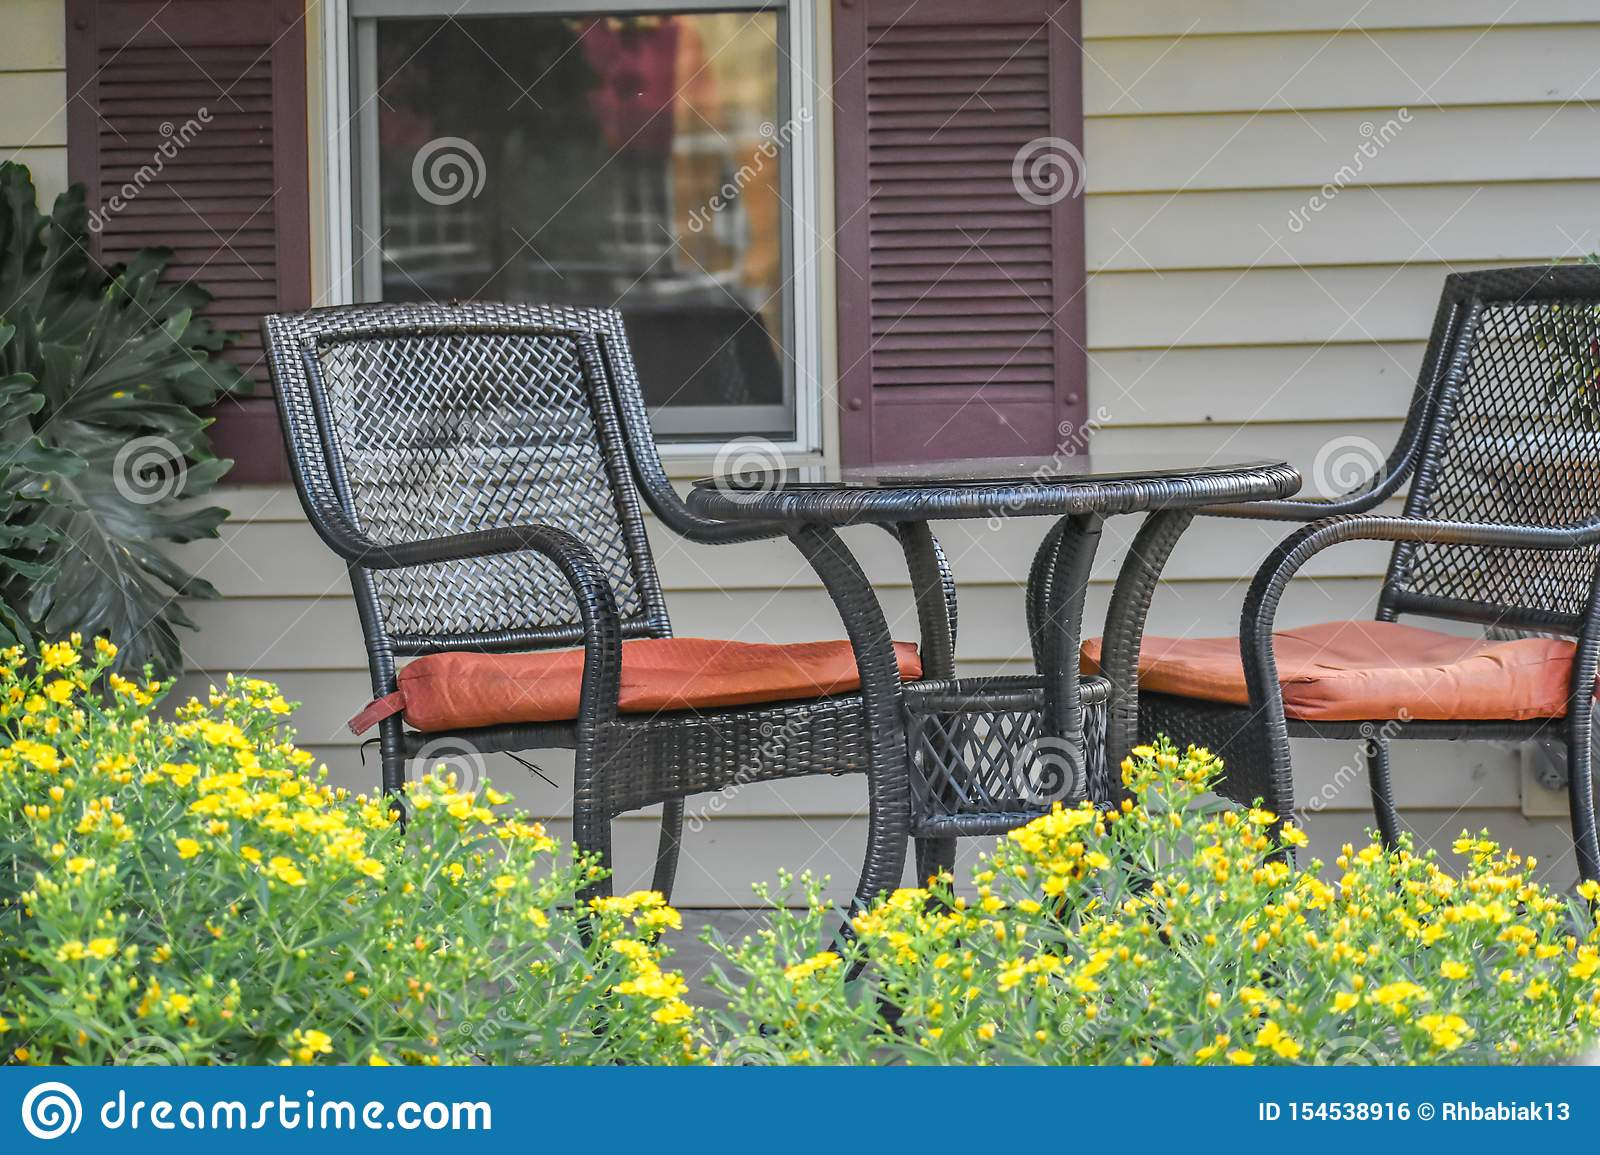 https www dreamstime com patio table chairs yellow flowers black wicker set two sitting front porch blooming int landscaped gardens image154538916